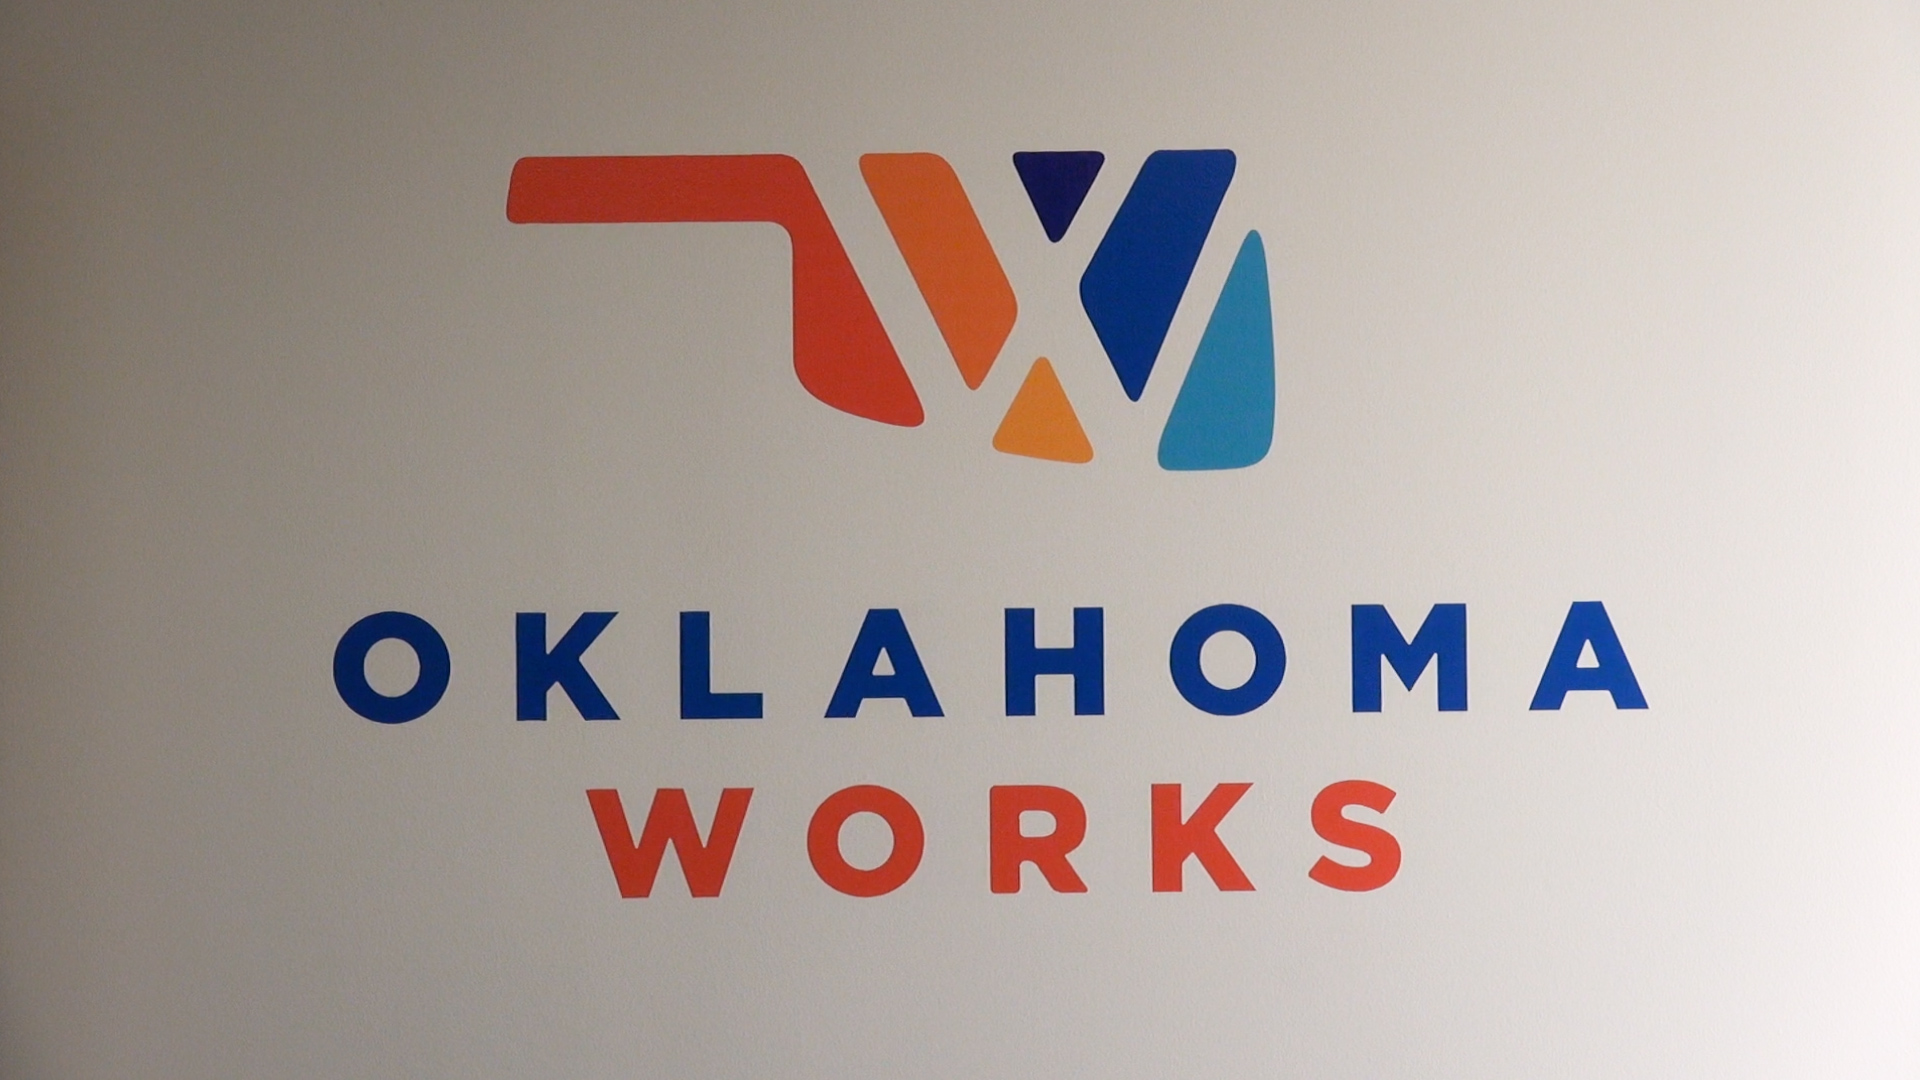 Oklahoma Works, Oklahoma Office of Workforce Development